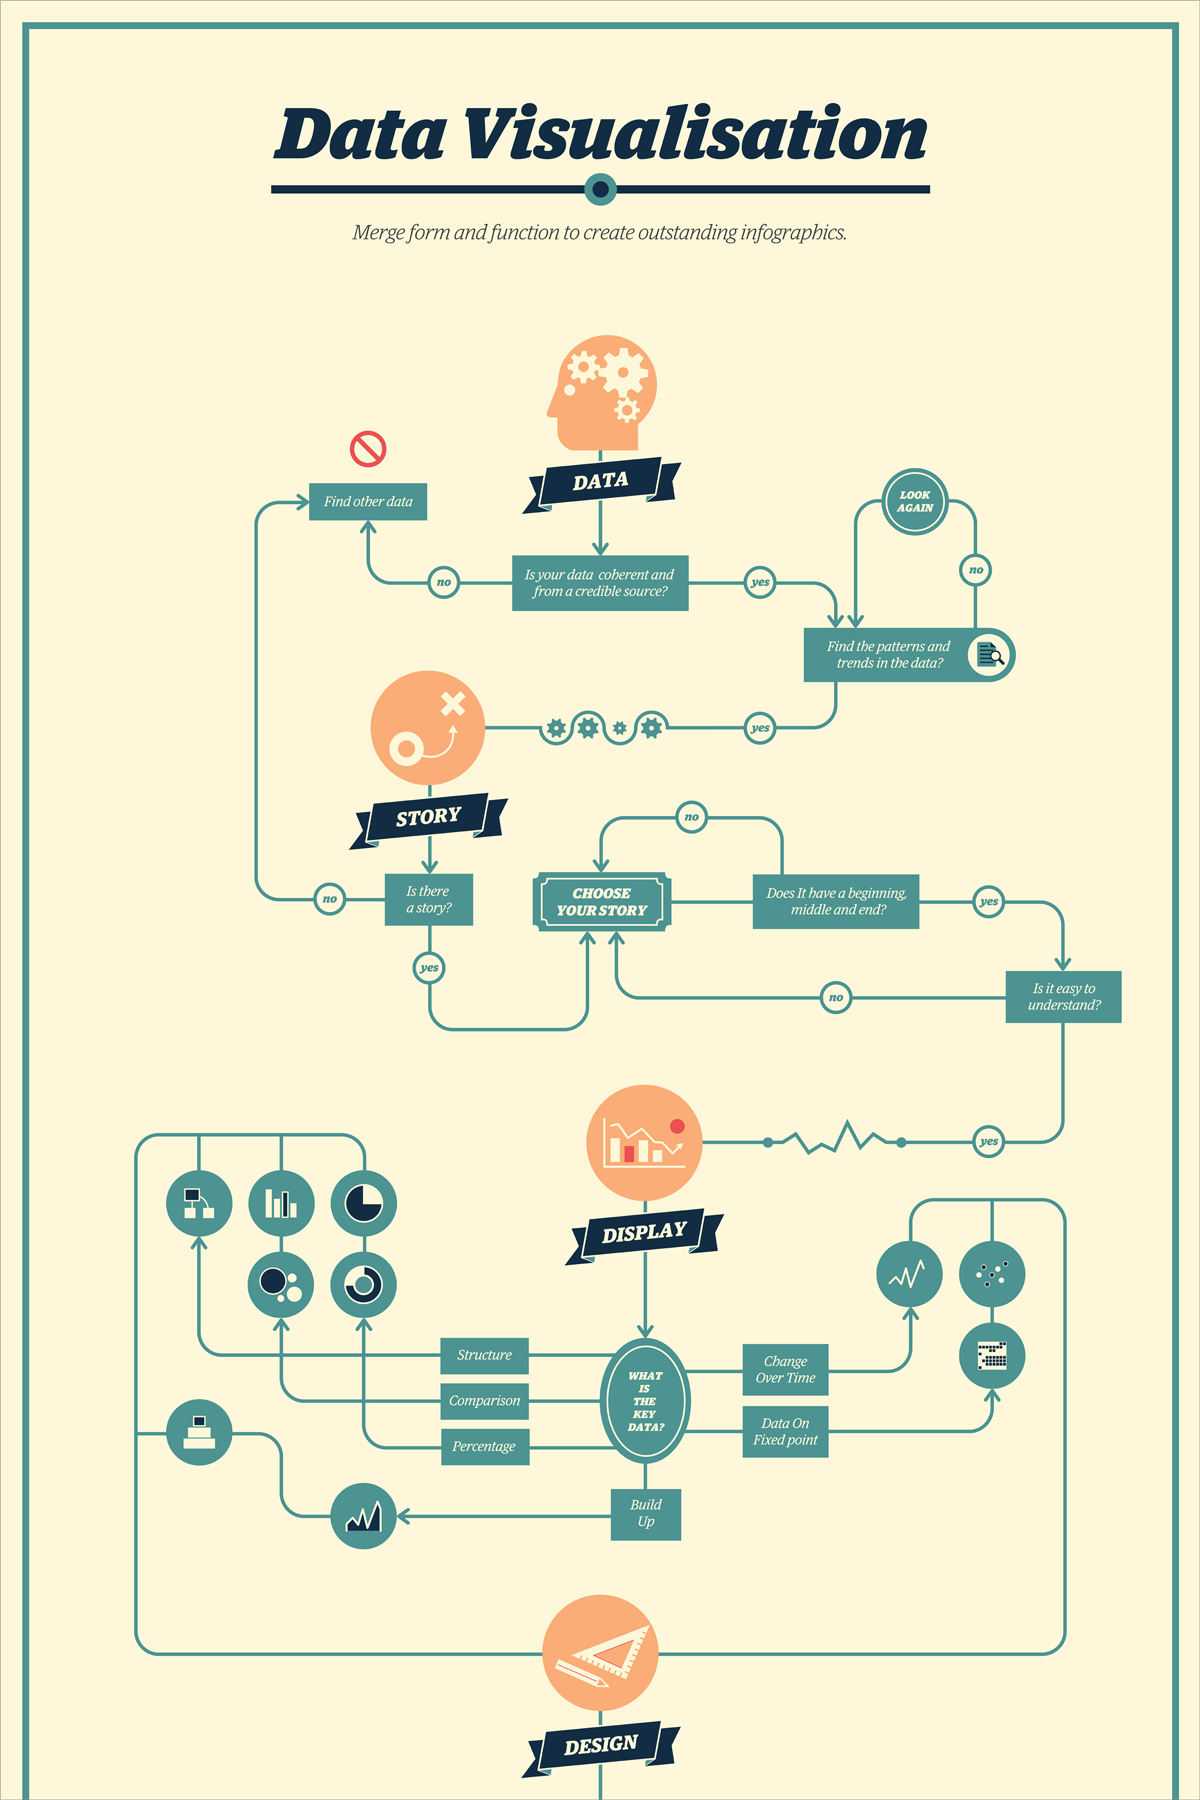 21 Creative Flowchart Examples for Making Important Life Decisions Keep it Simple